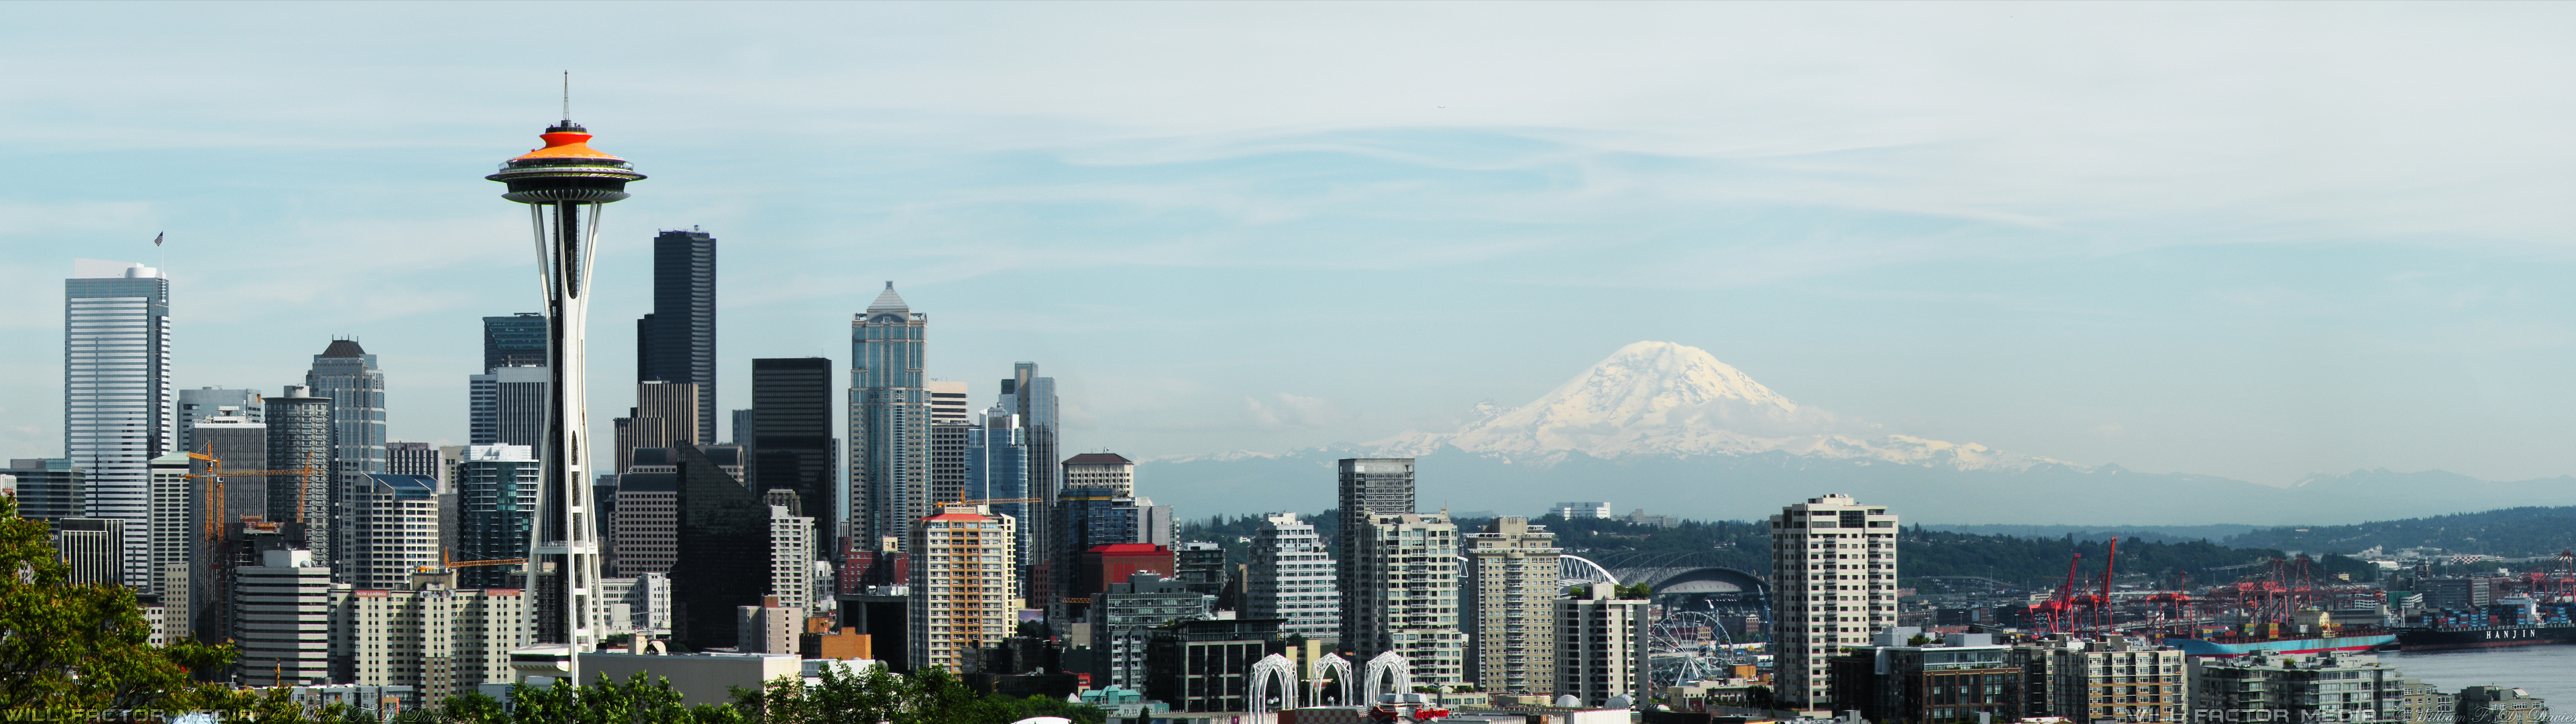 Dual Monitor 3840x1080 Seattle Wallpaper By